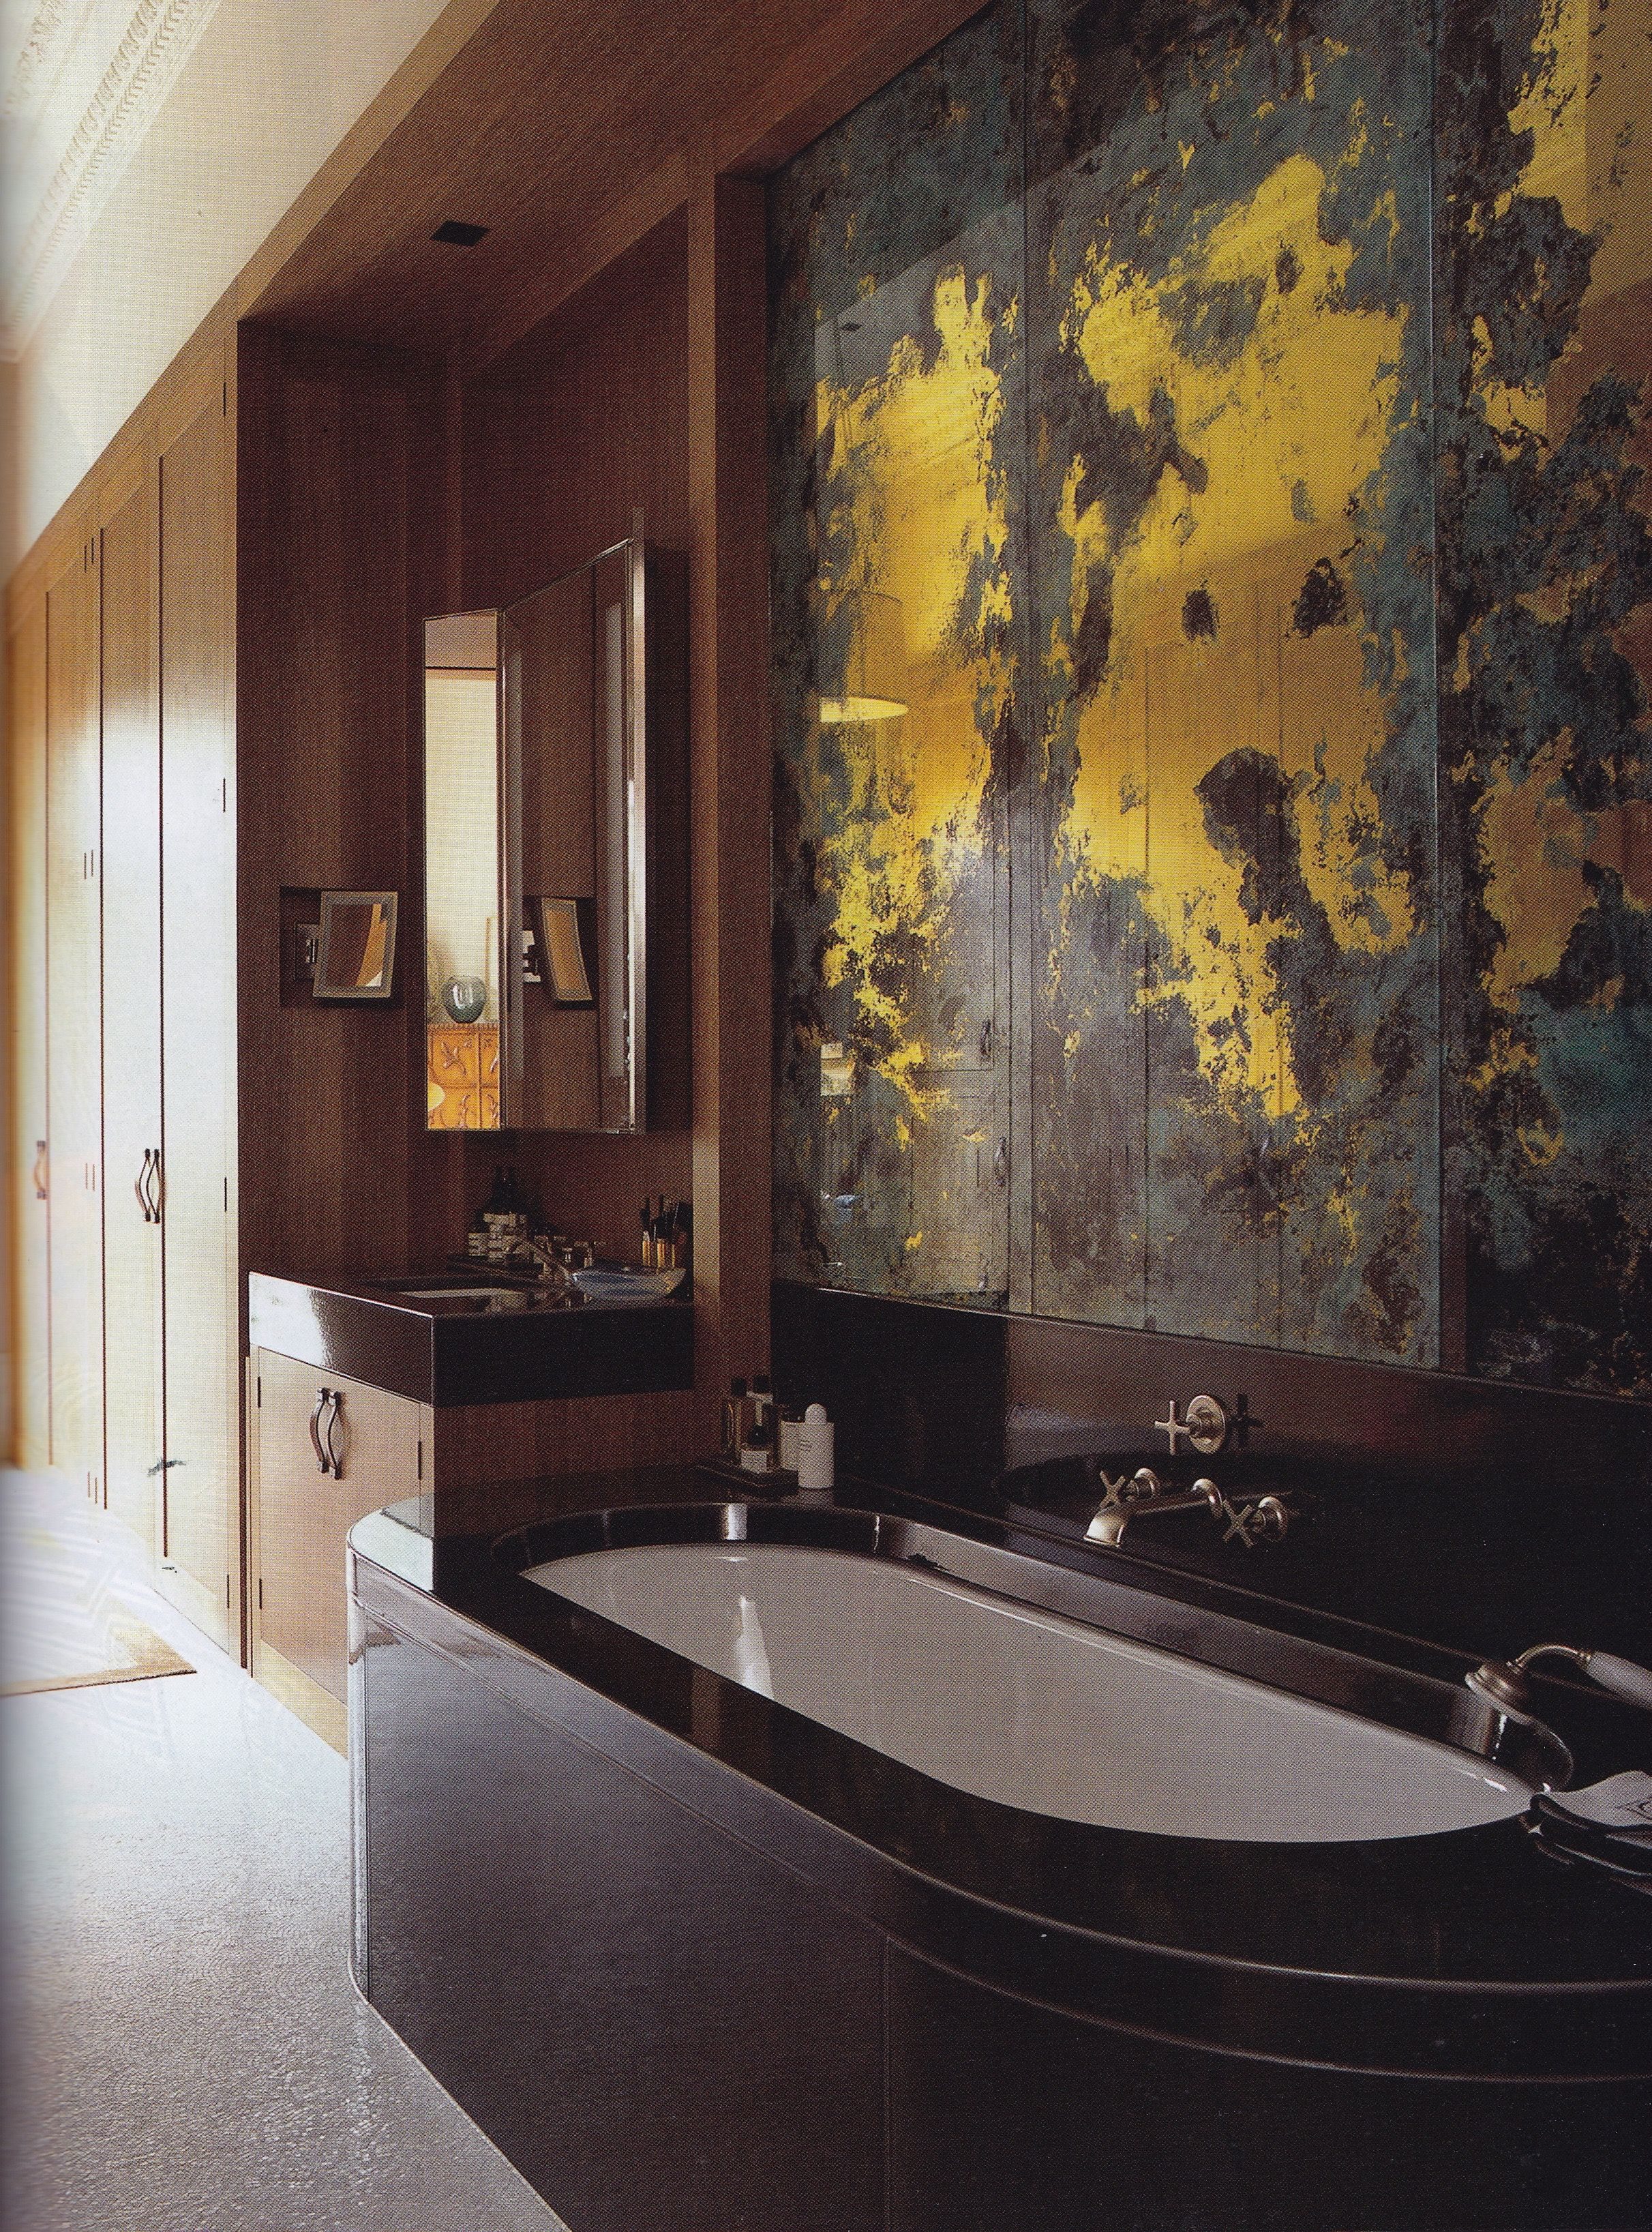 london flat designed by jonathan reed the world of interiors march 2015 photography - Glass Sheet Bathroom 2015